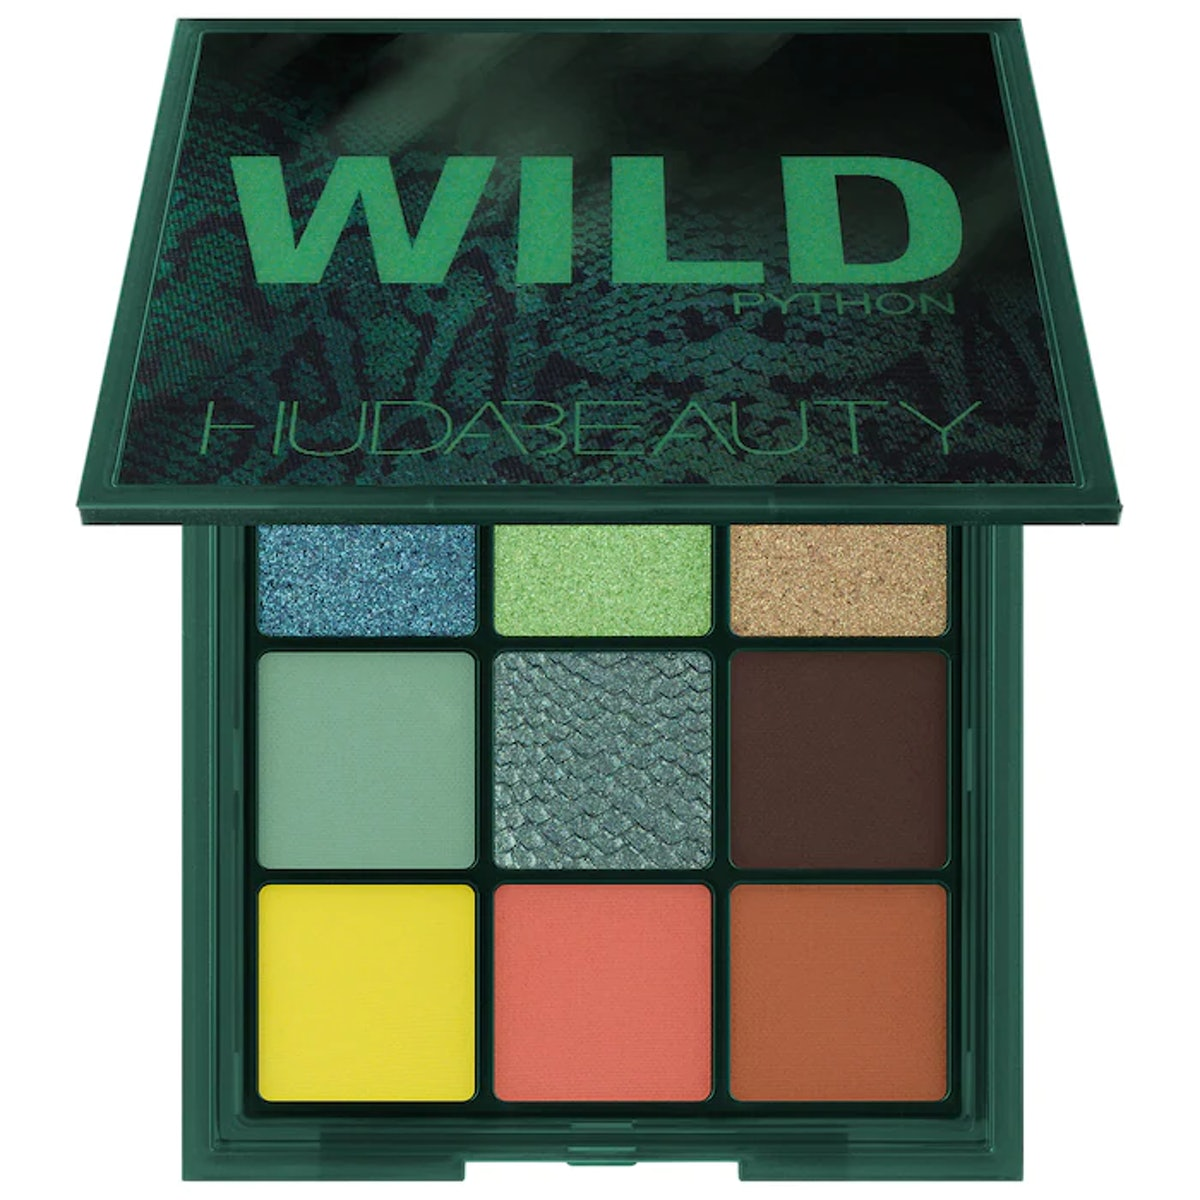 Wild Obsessions Eyeshadow Palette